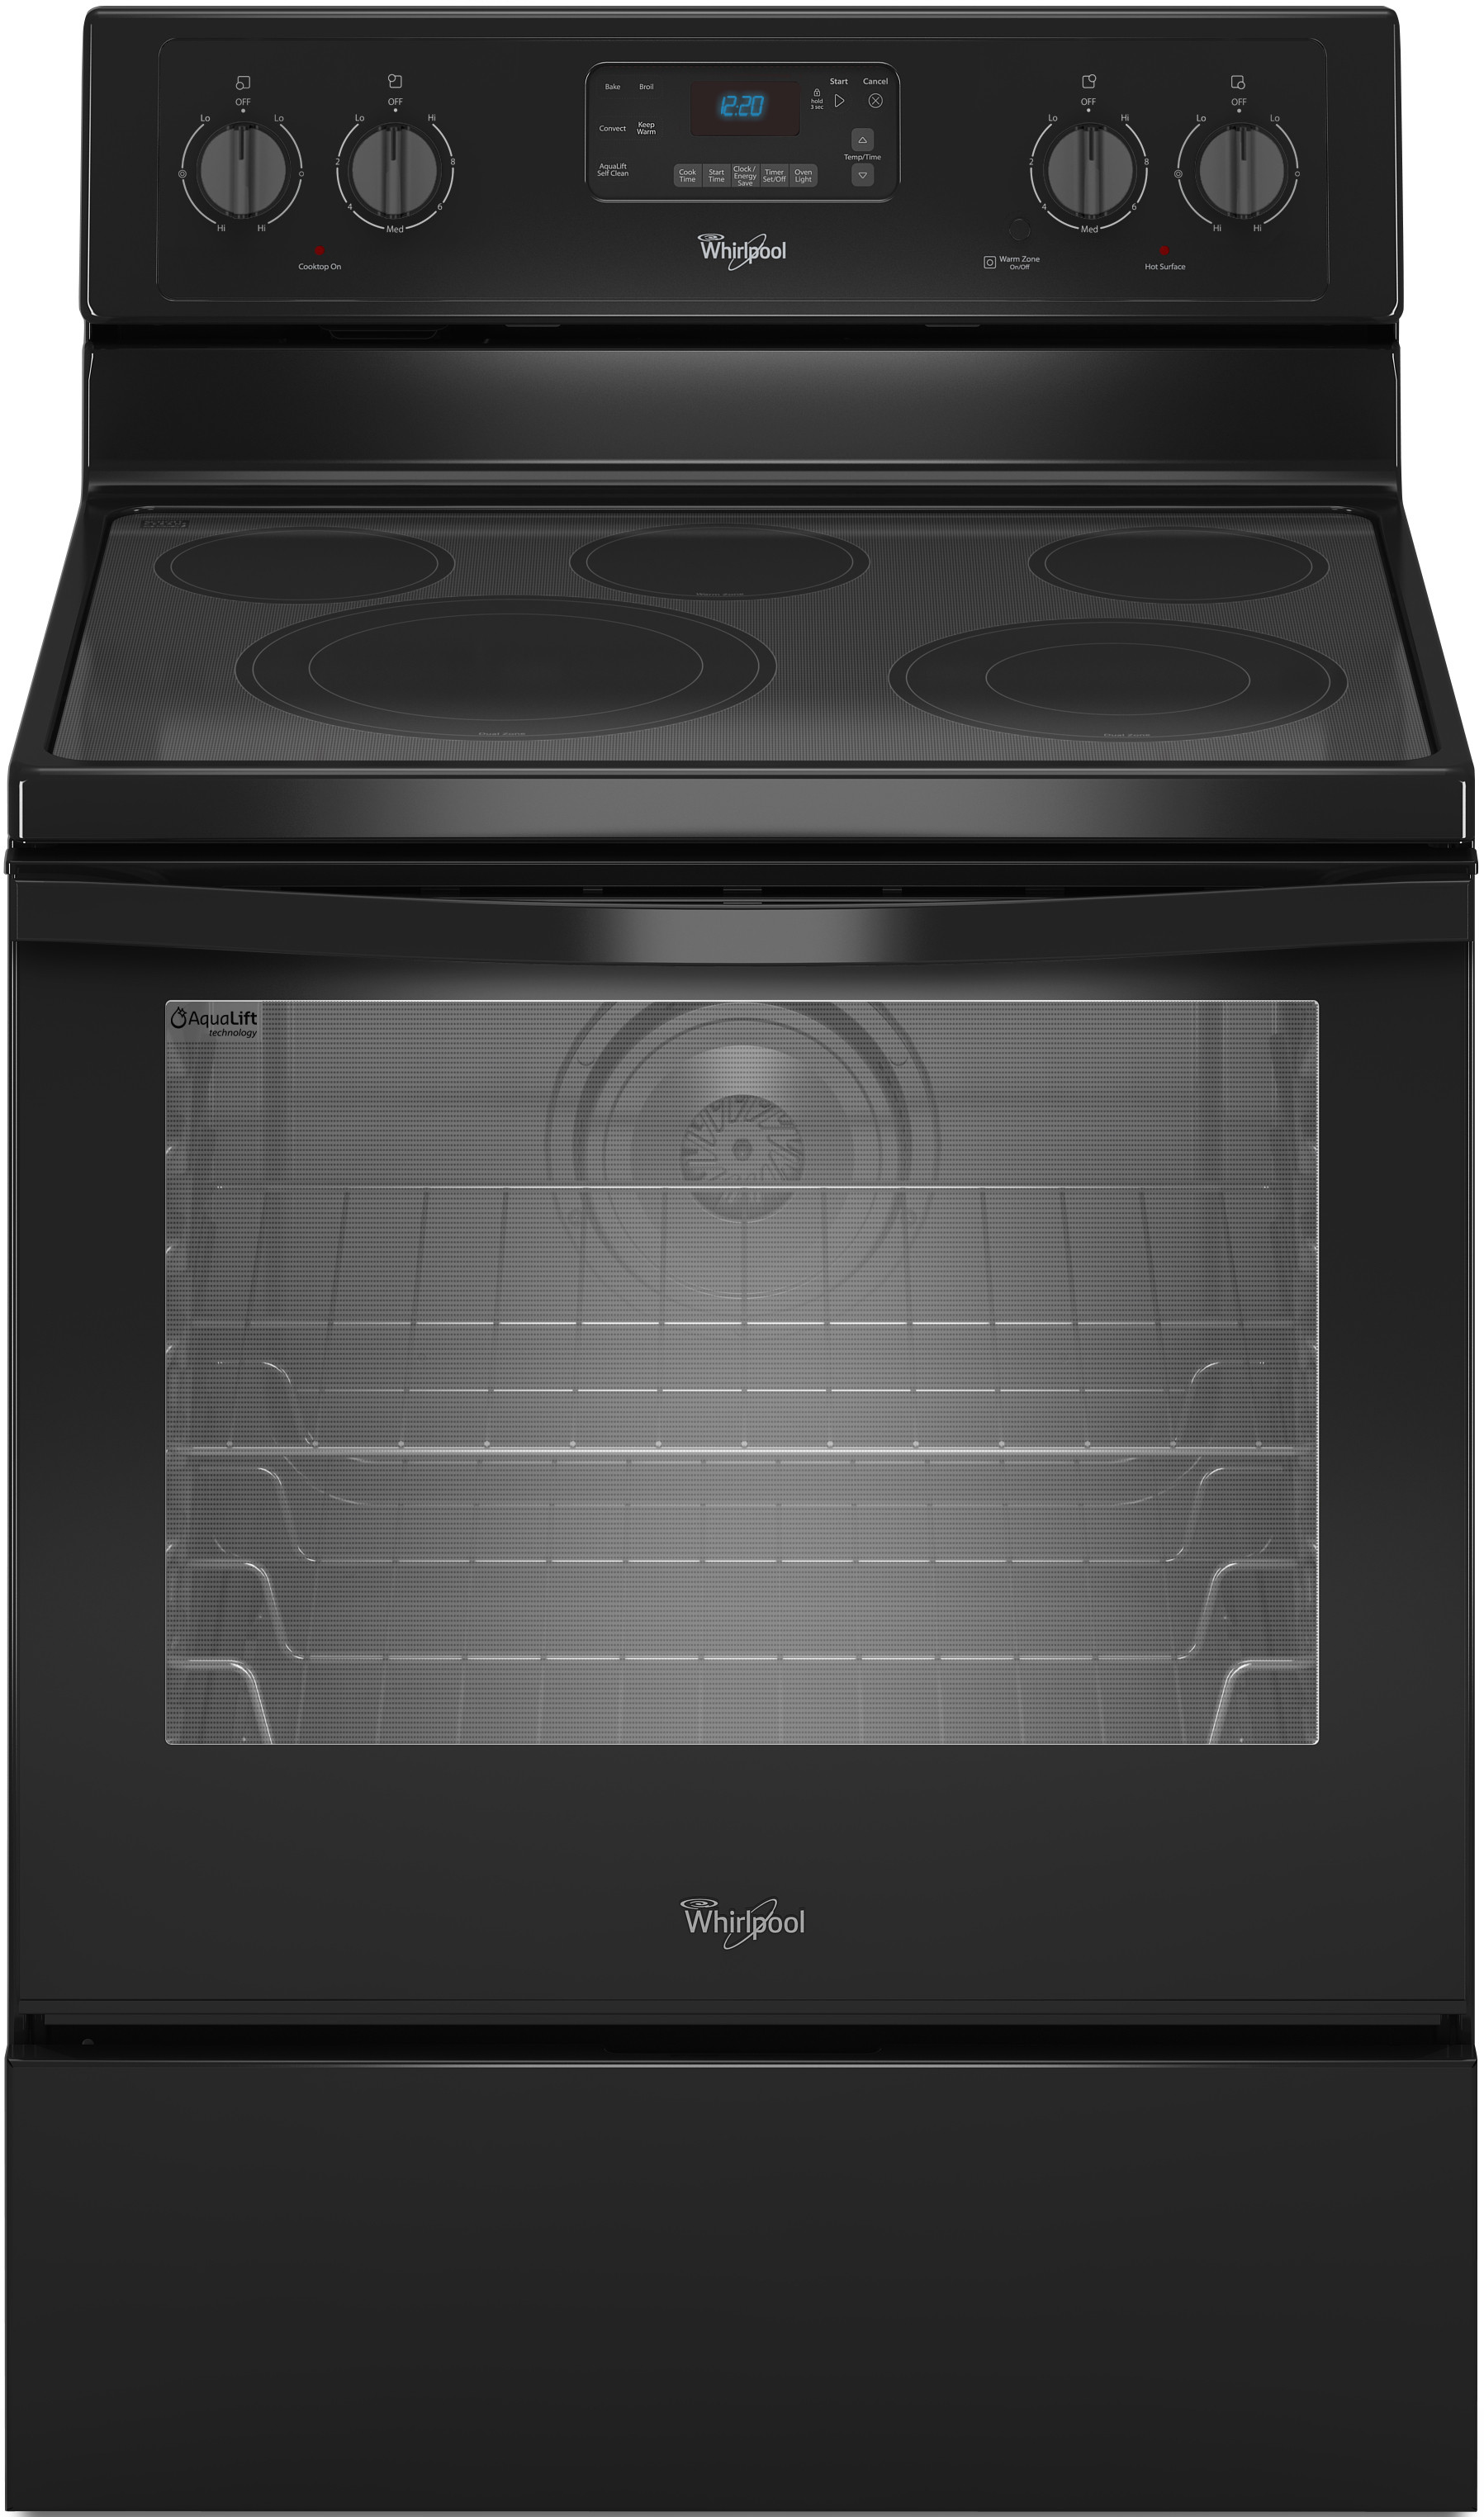 Whirlpool WFE540H0EB 30 Inch Freestanding Electric Range with ...